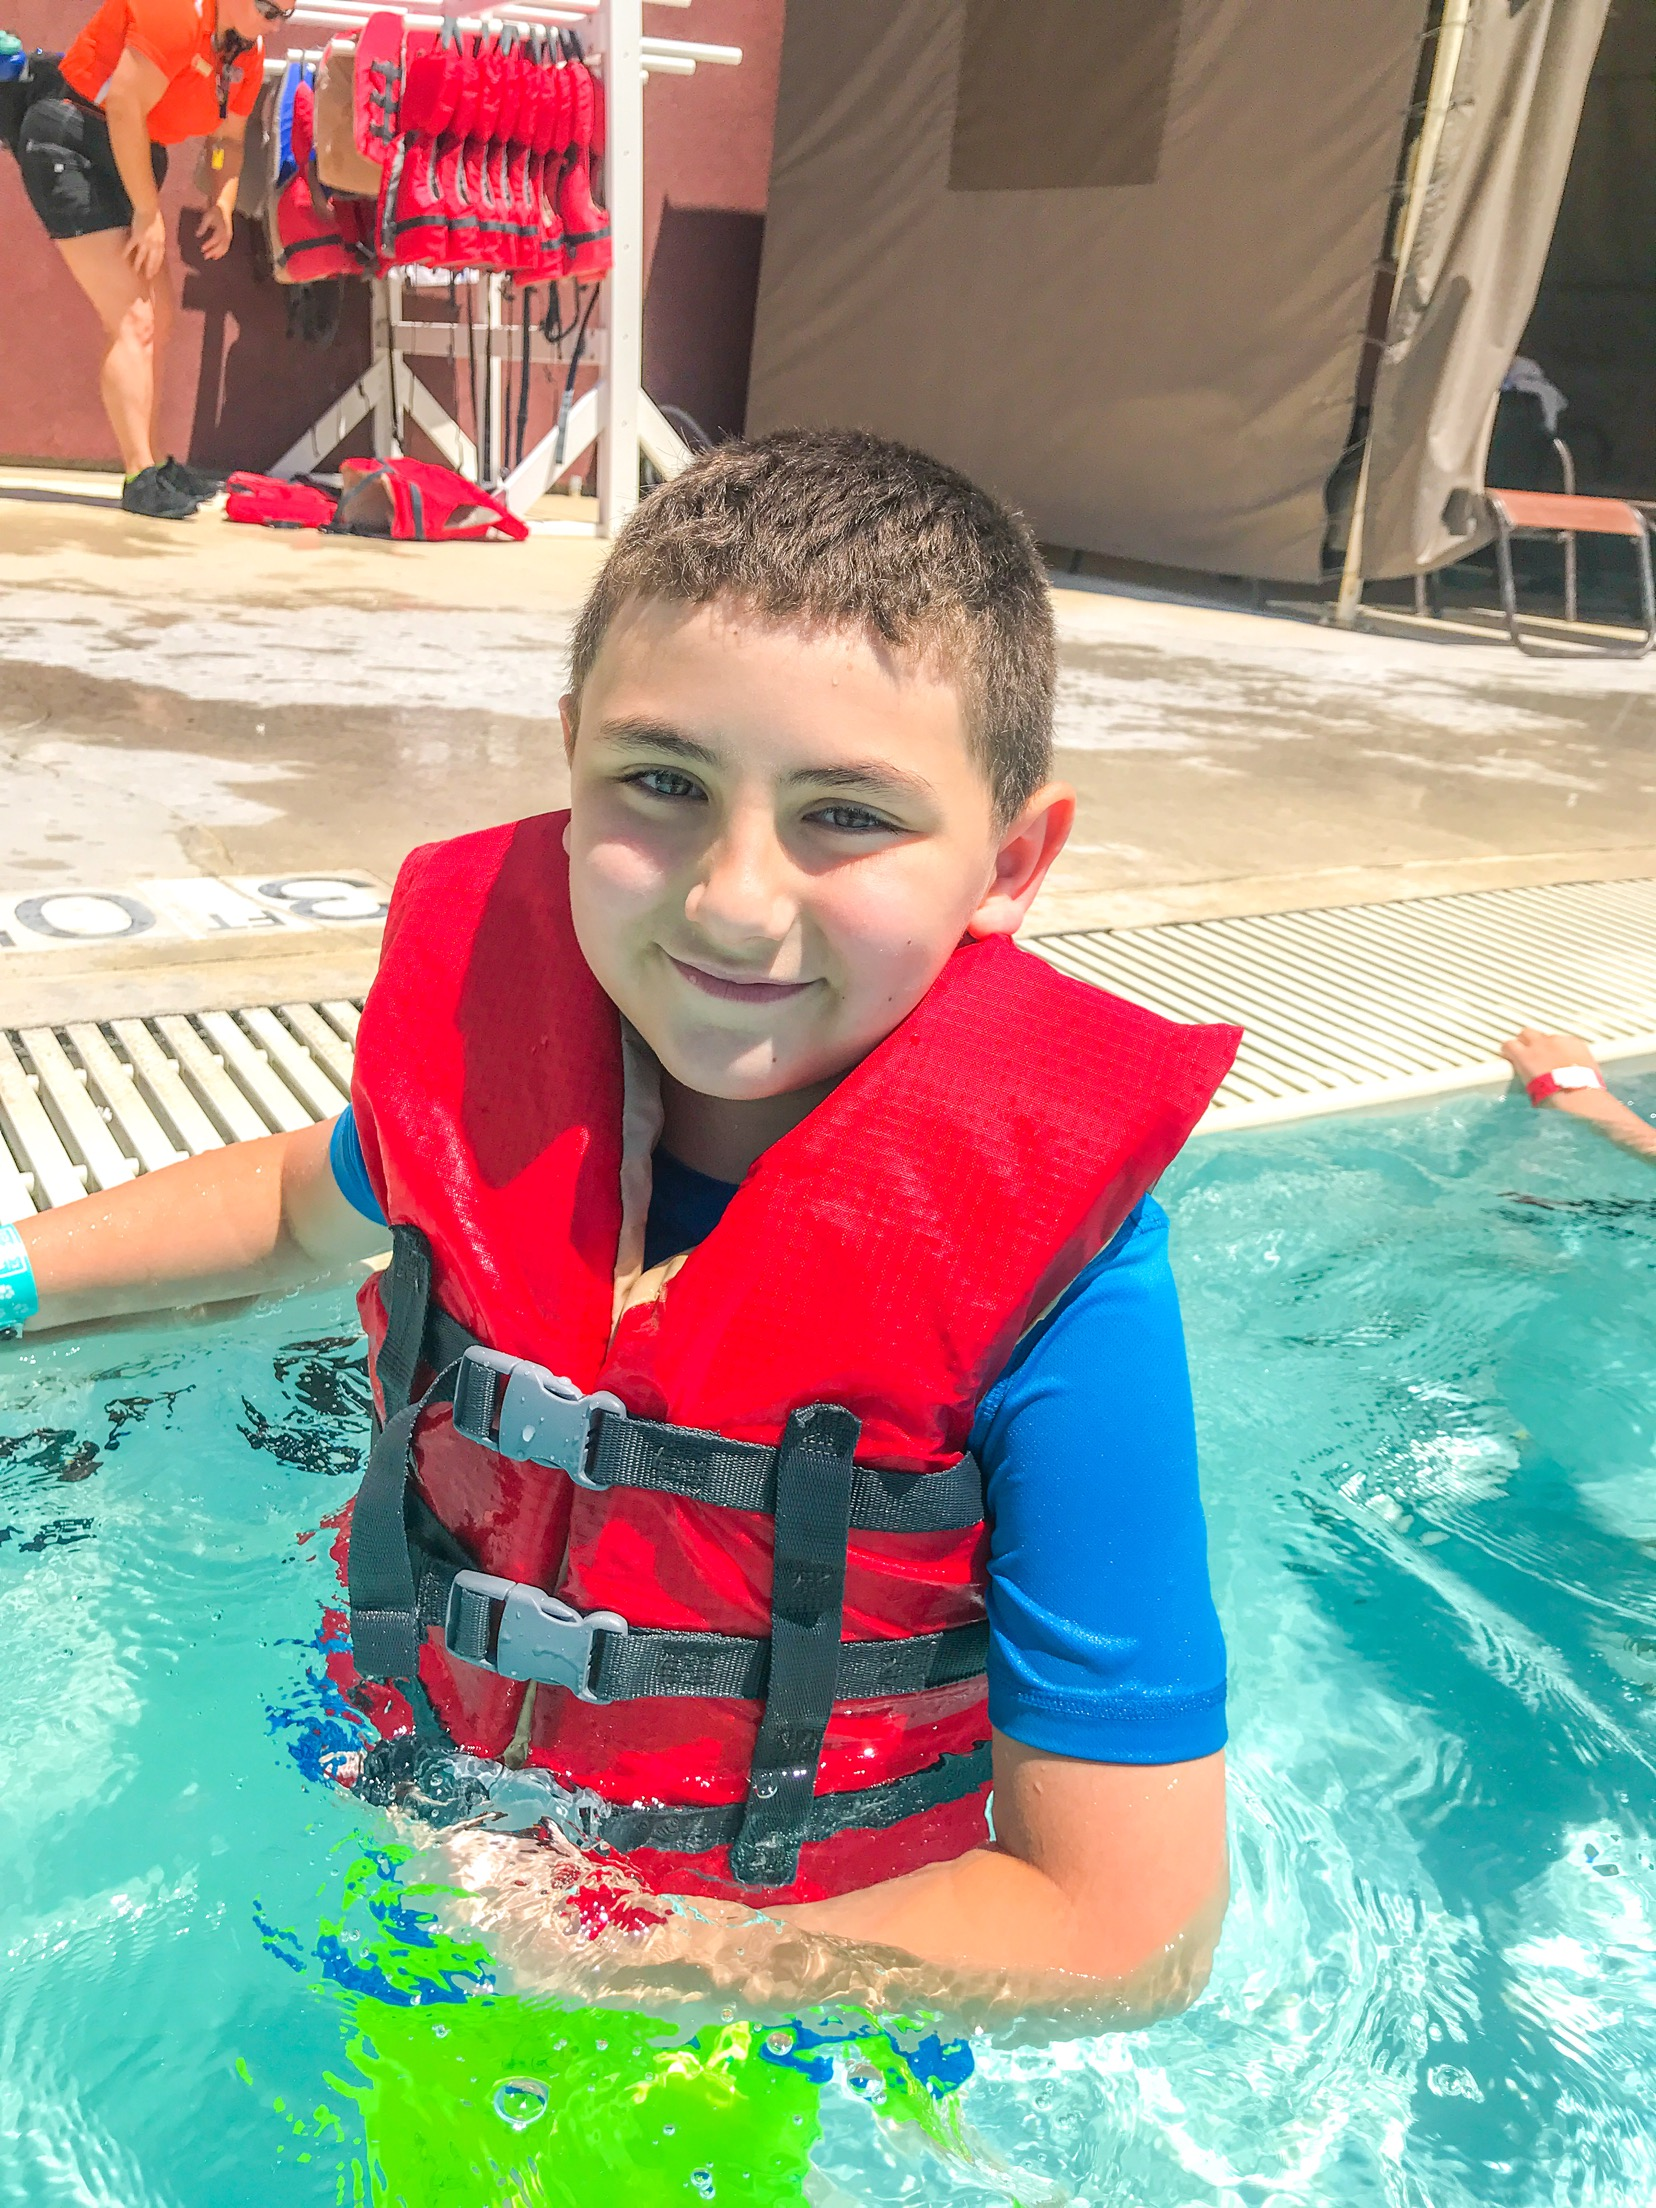 Why You Should Celebrate Birthdays at Great Wolf Lodge